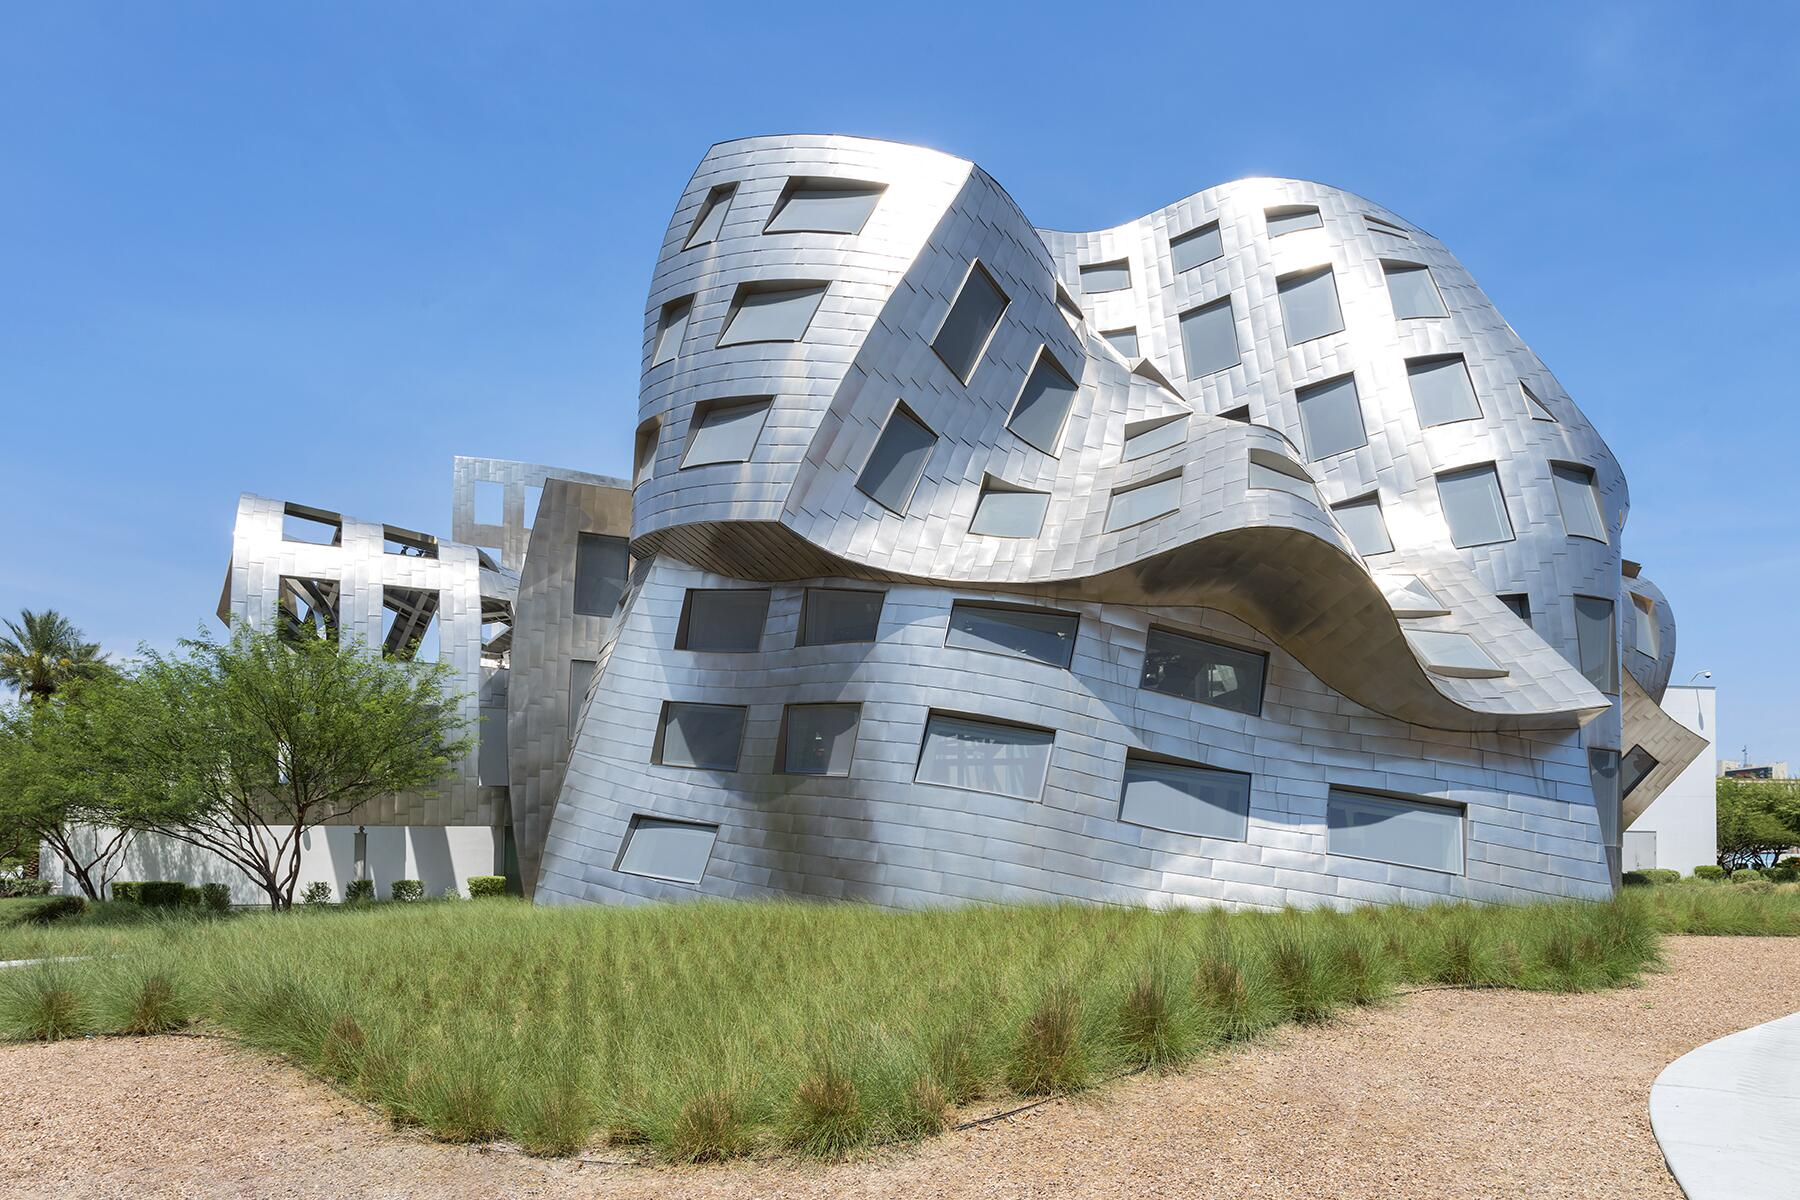 13 Iconic (and Wacky) Frank Gehry Buildings